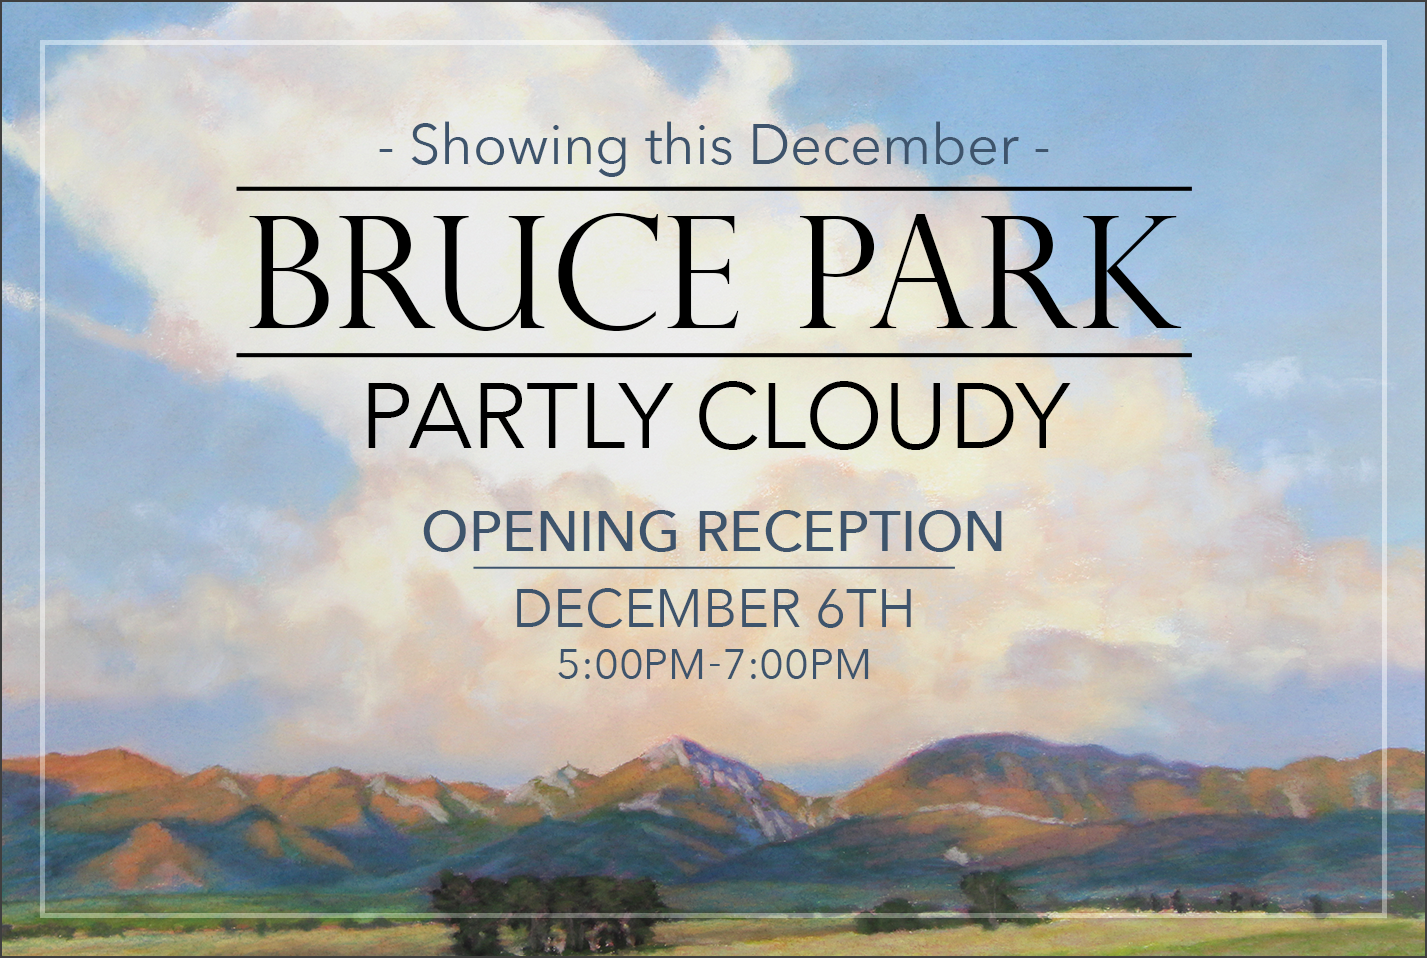 Bruce Park Partly Cloudy Event page picture